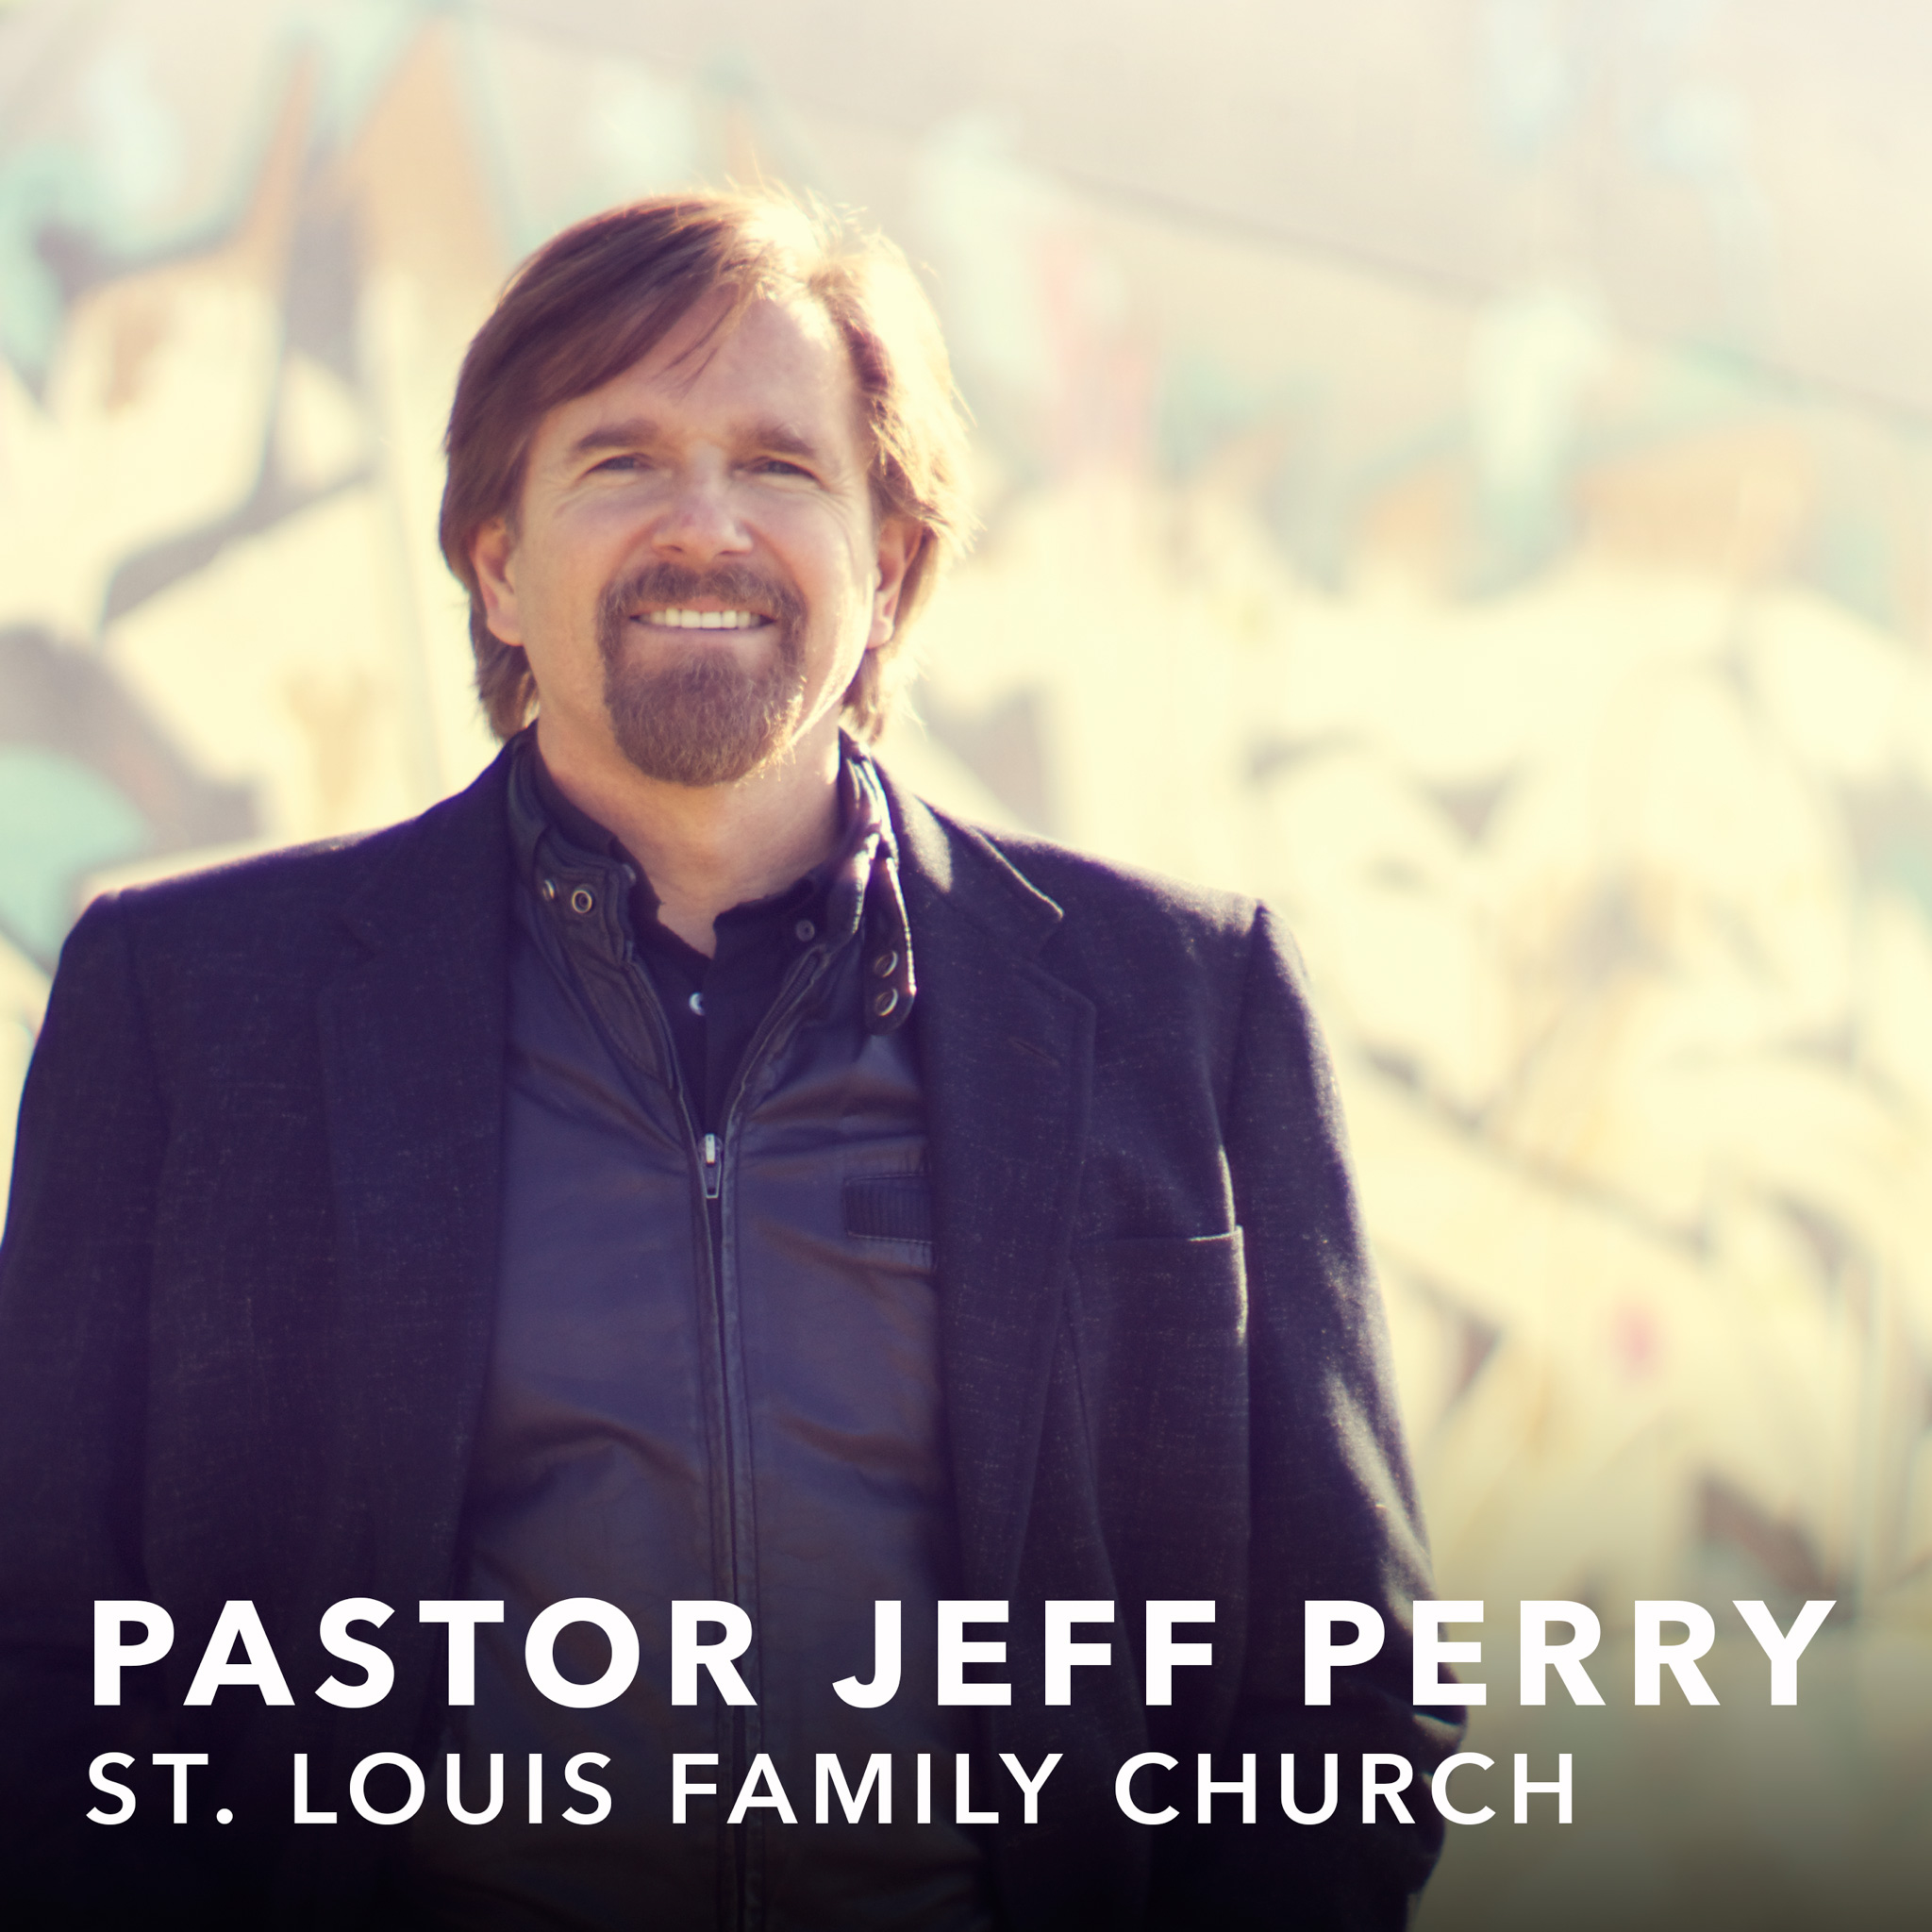 St. Louis Family Church - Pastor Jeff Perry